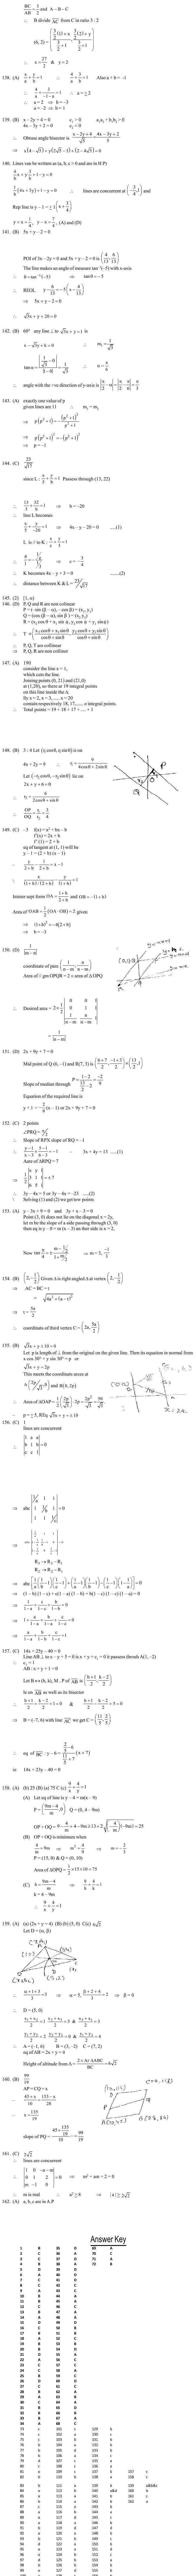 JEE Question Bank Maths - Line and Lines